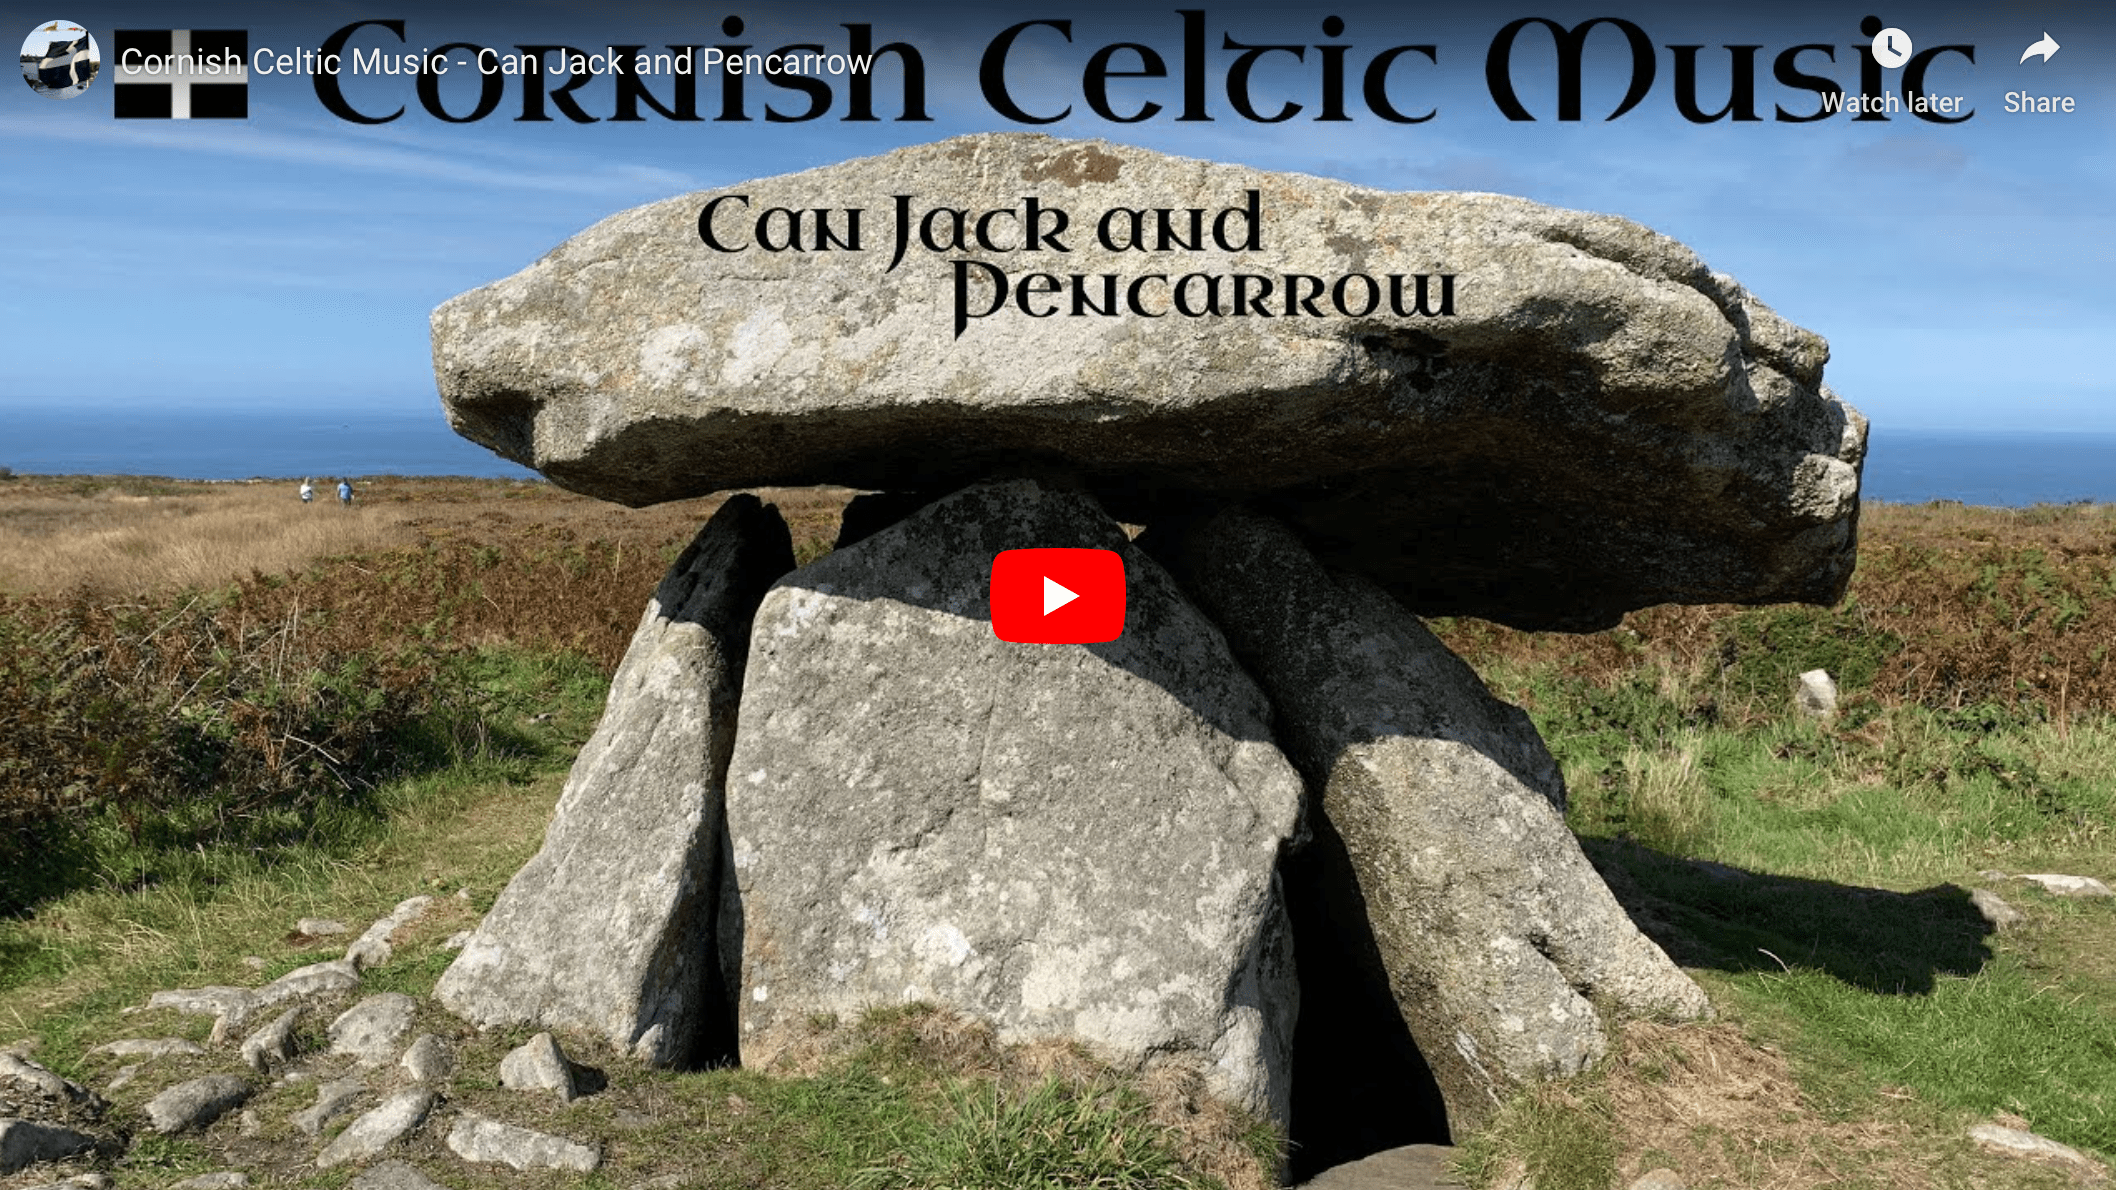 Thumbnail of a YouTube video showing Chûn Quoit